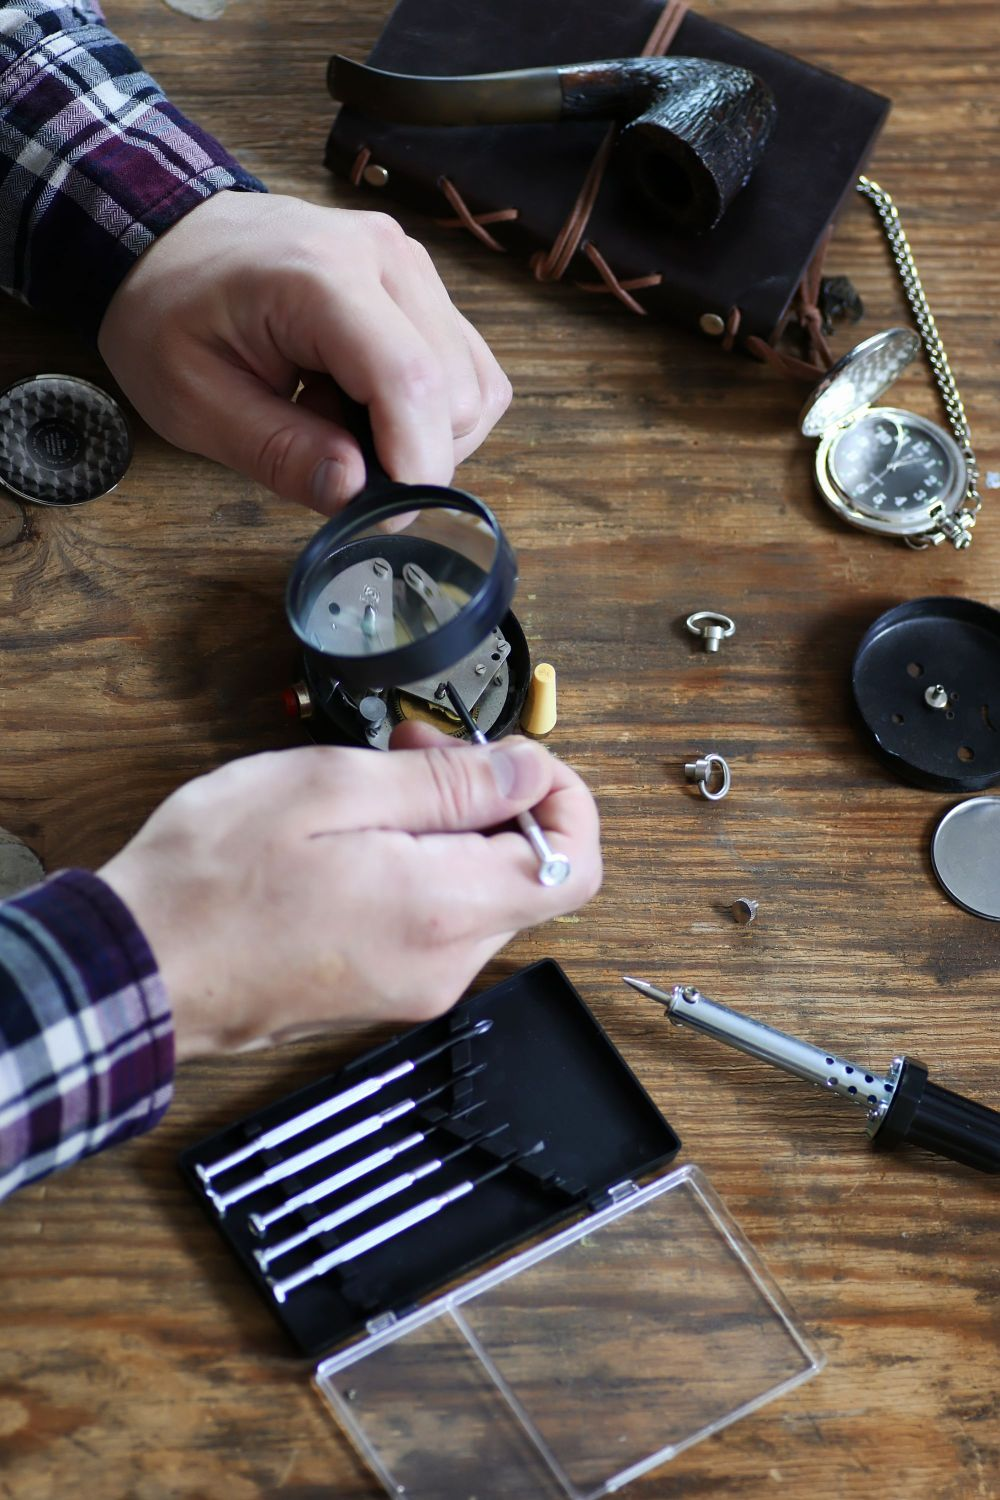 Timepiece repair and restoration in St. Louis, MO